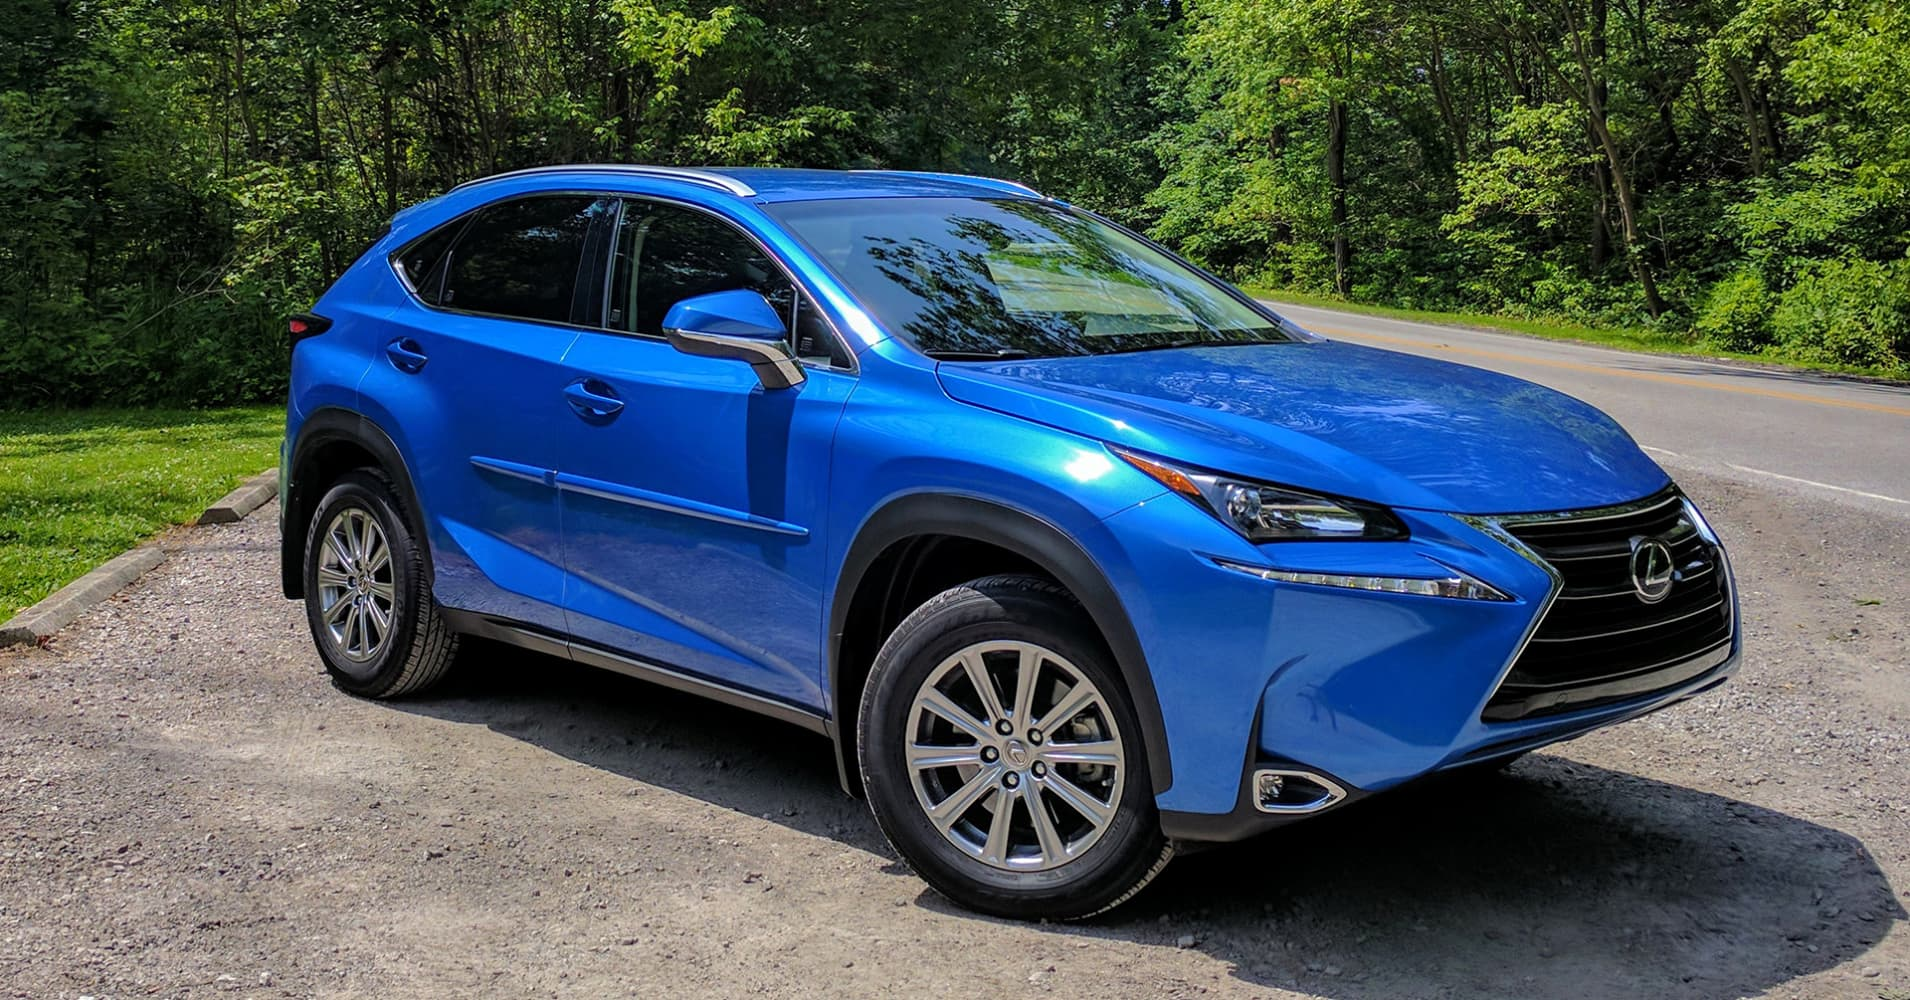 White Lexus Suv >> 2017 Lexus NX200t review: best value in subcompact luxury SUV segment